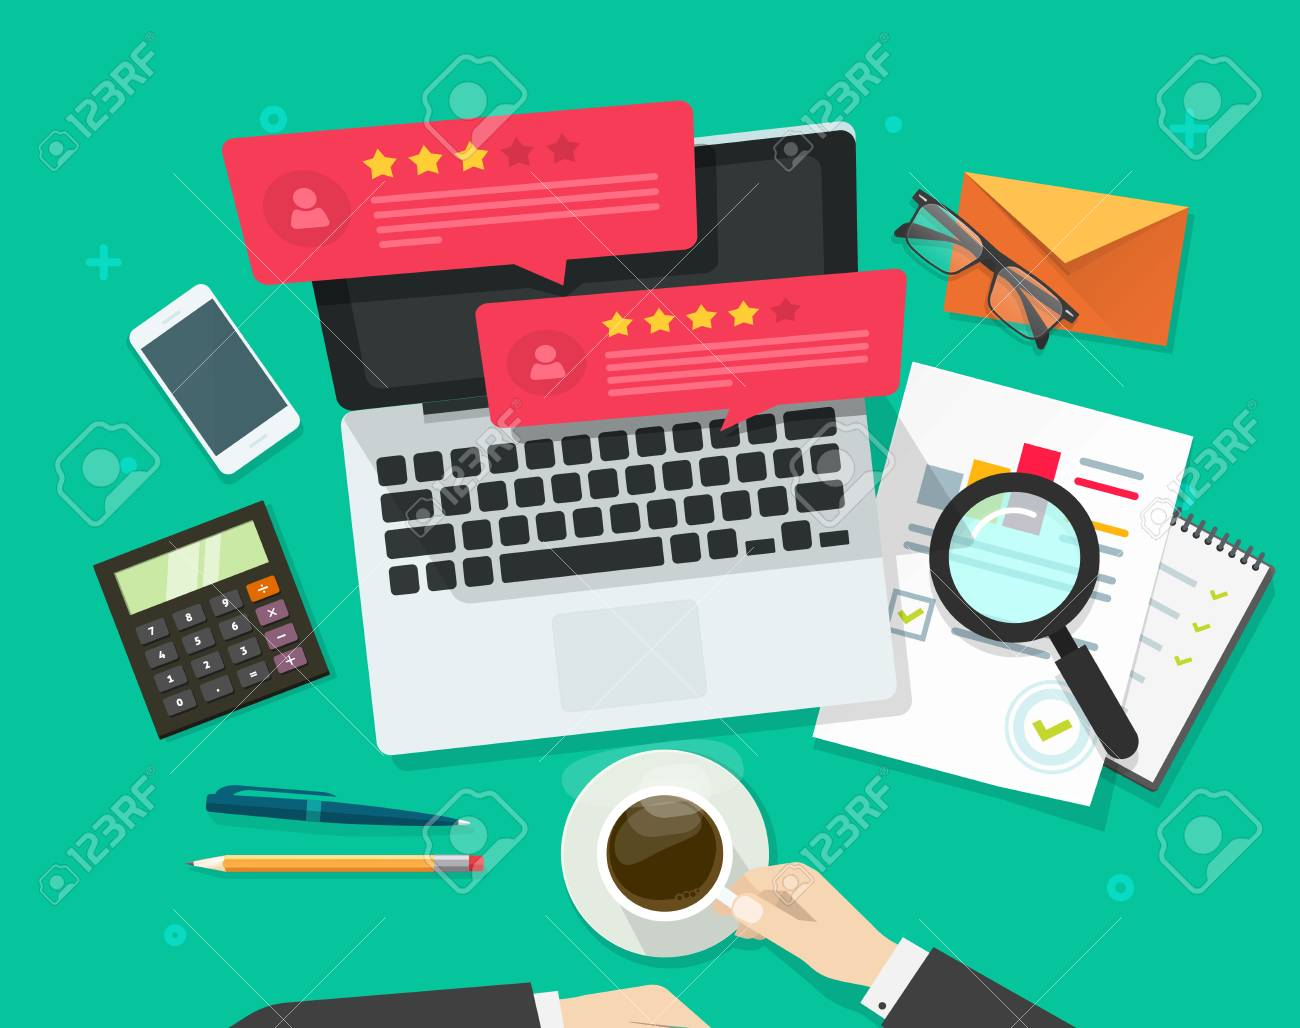 Review rating bubble speeches on computer vector illustration, flat style laptop reviews stars with good, bad rate, concept of customer testimonials messages, notifications, feedback experience - 82179843